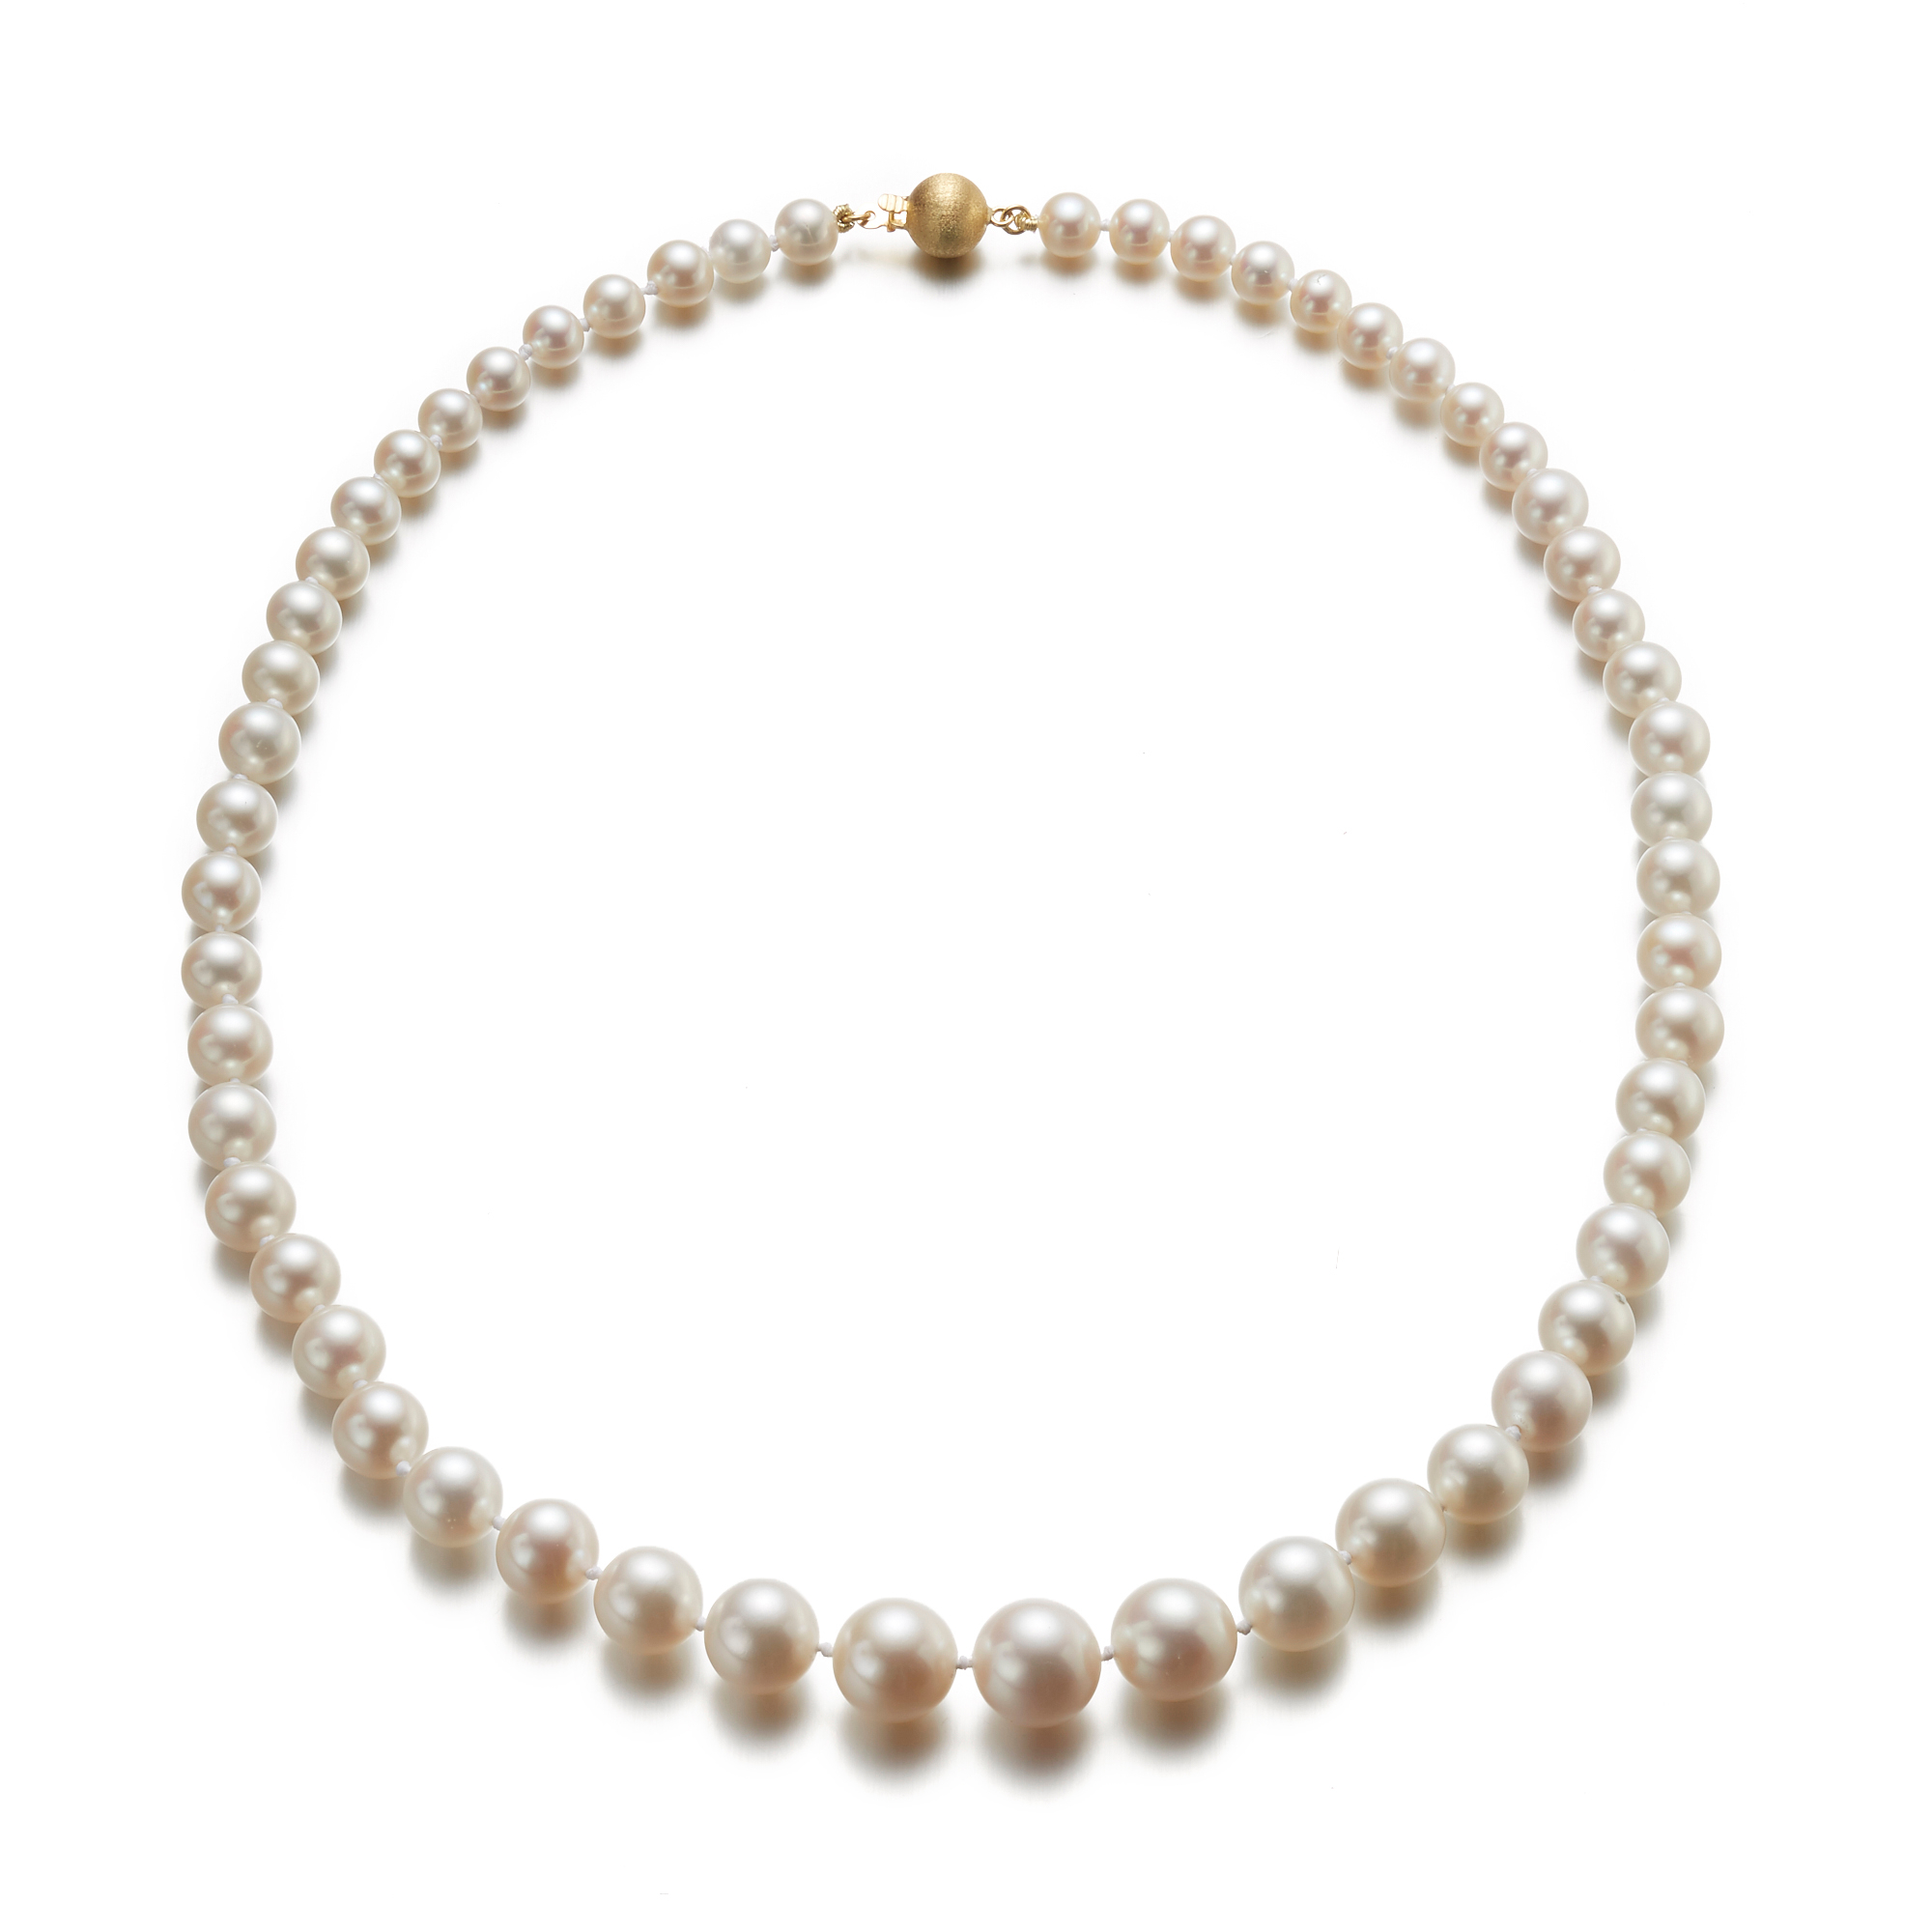 Gump's Graduated White Freshwater Pearl Necklace